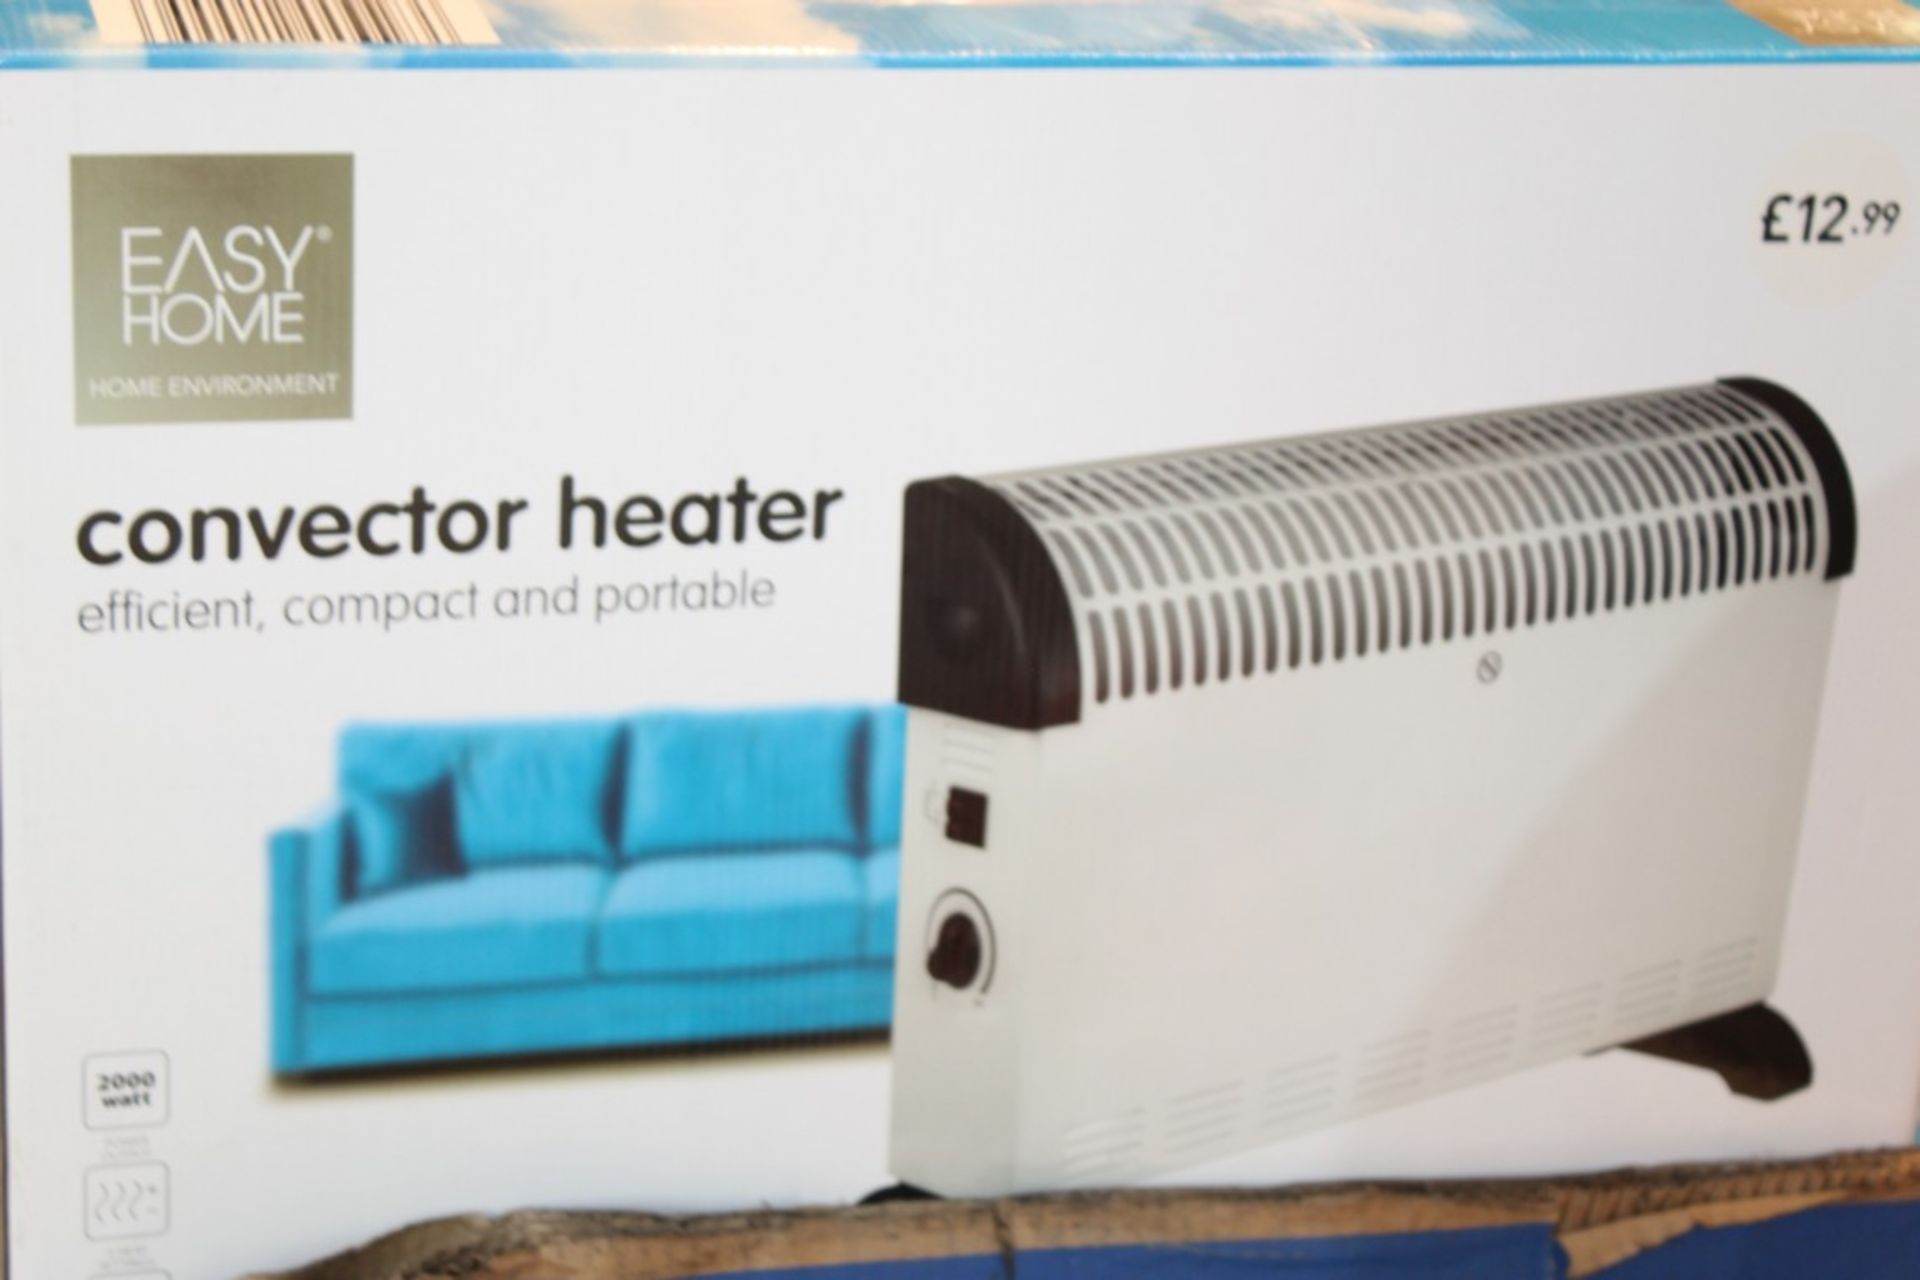 Lot 238 - Boxed Easy Home Efficient Compact & Portable Convector Heater RRP £15 Each (Pictures Are For